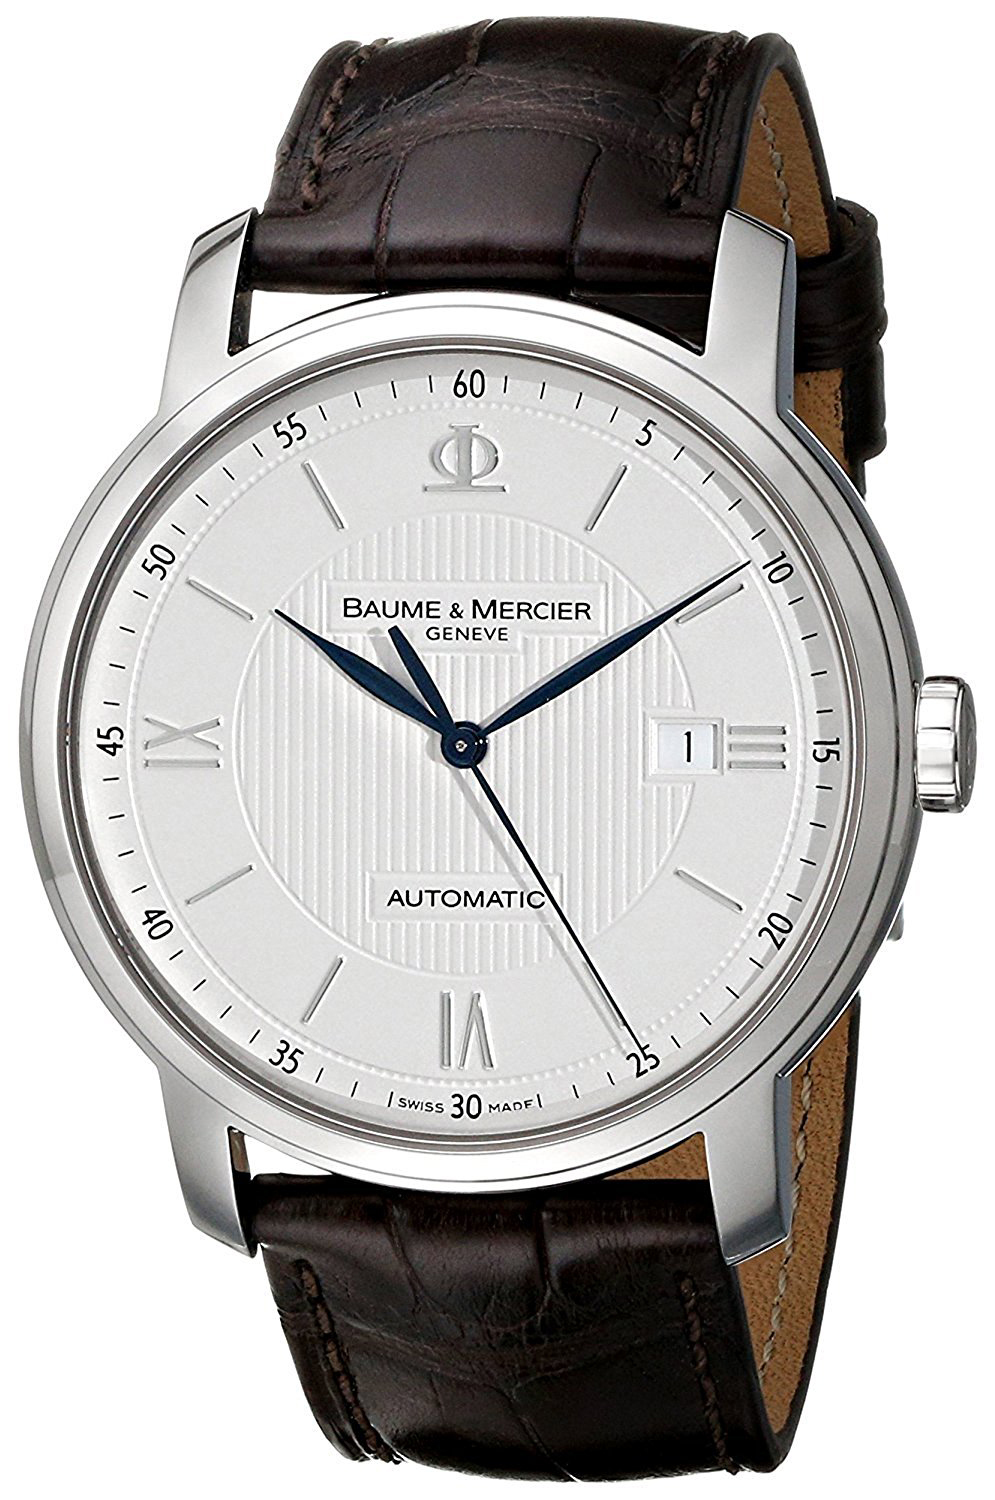 Baume & Mercier Classima Executives Herreklokke M0A08731 - Baume & Mercier